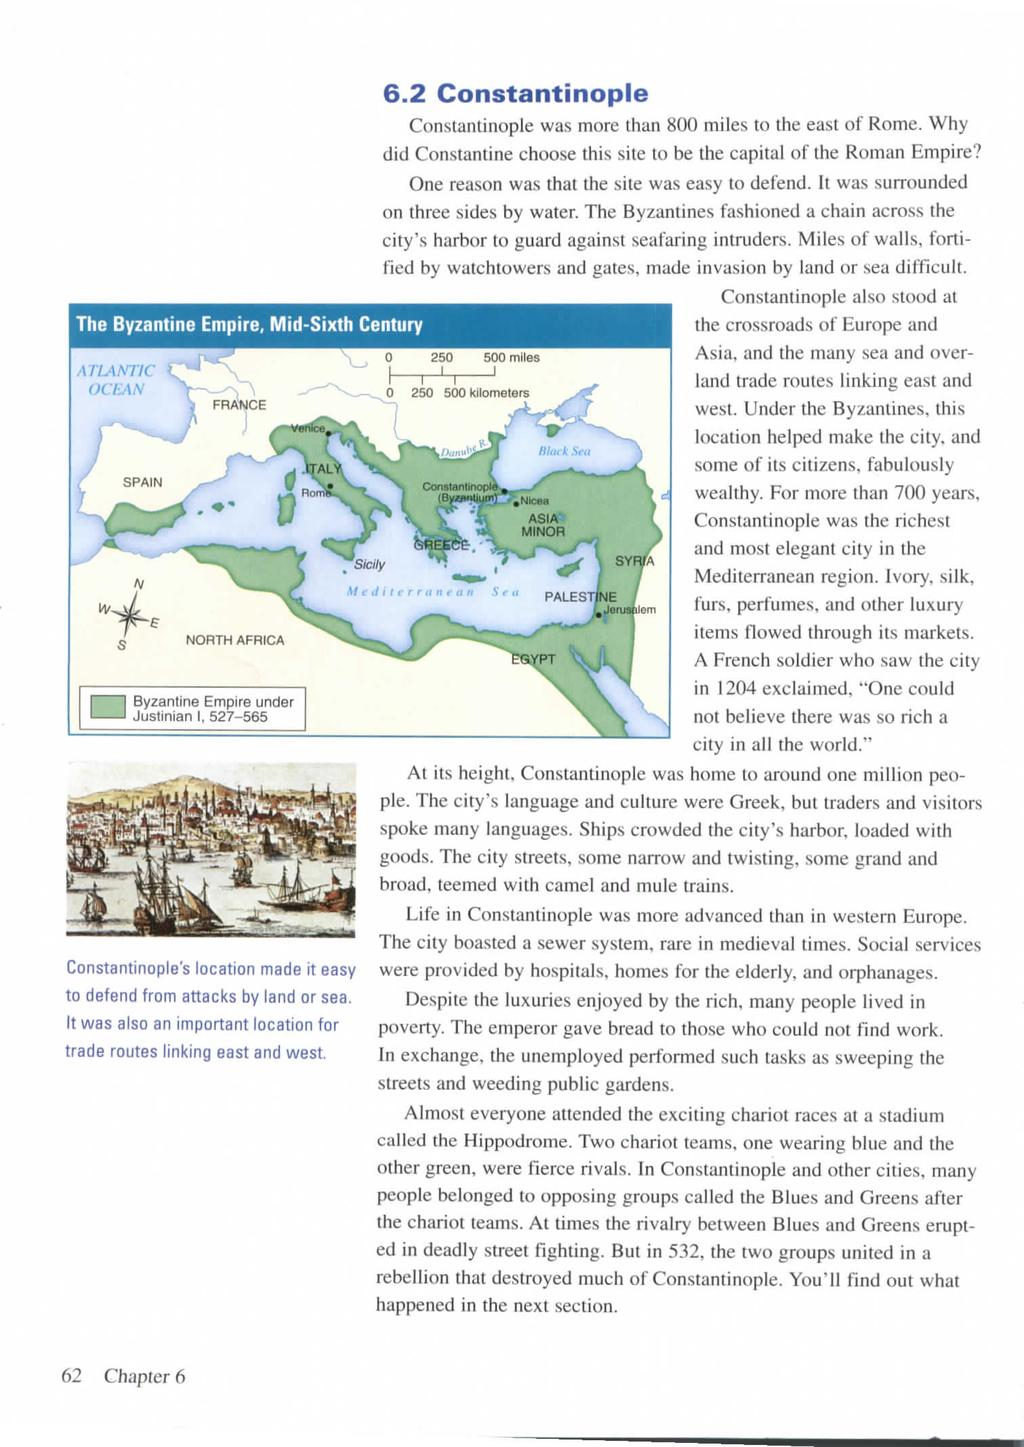 "The Byzantine Empire, Mid-Sixth Century ATLANTIC ^V (ICI-AN \~^T\E NORTH AFRICA j ""V Byzantine Empire under Justinian I, 527-565 Constantinople's location made it easy to defend from attacks by land"